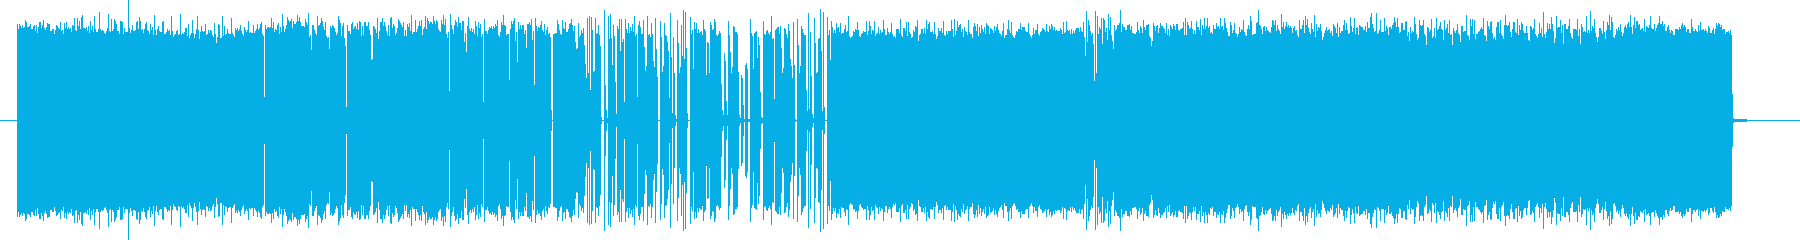 Pop and dance image's reproduced waveform